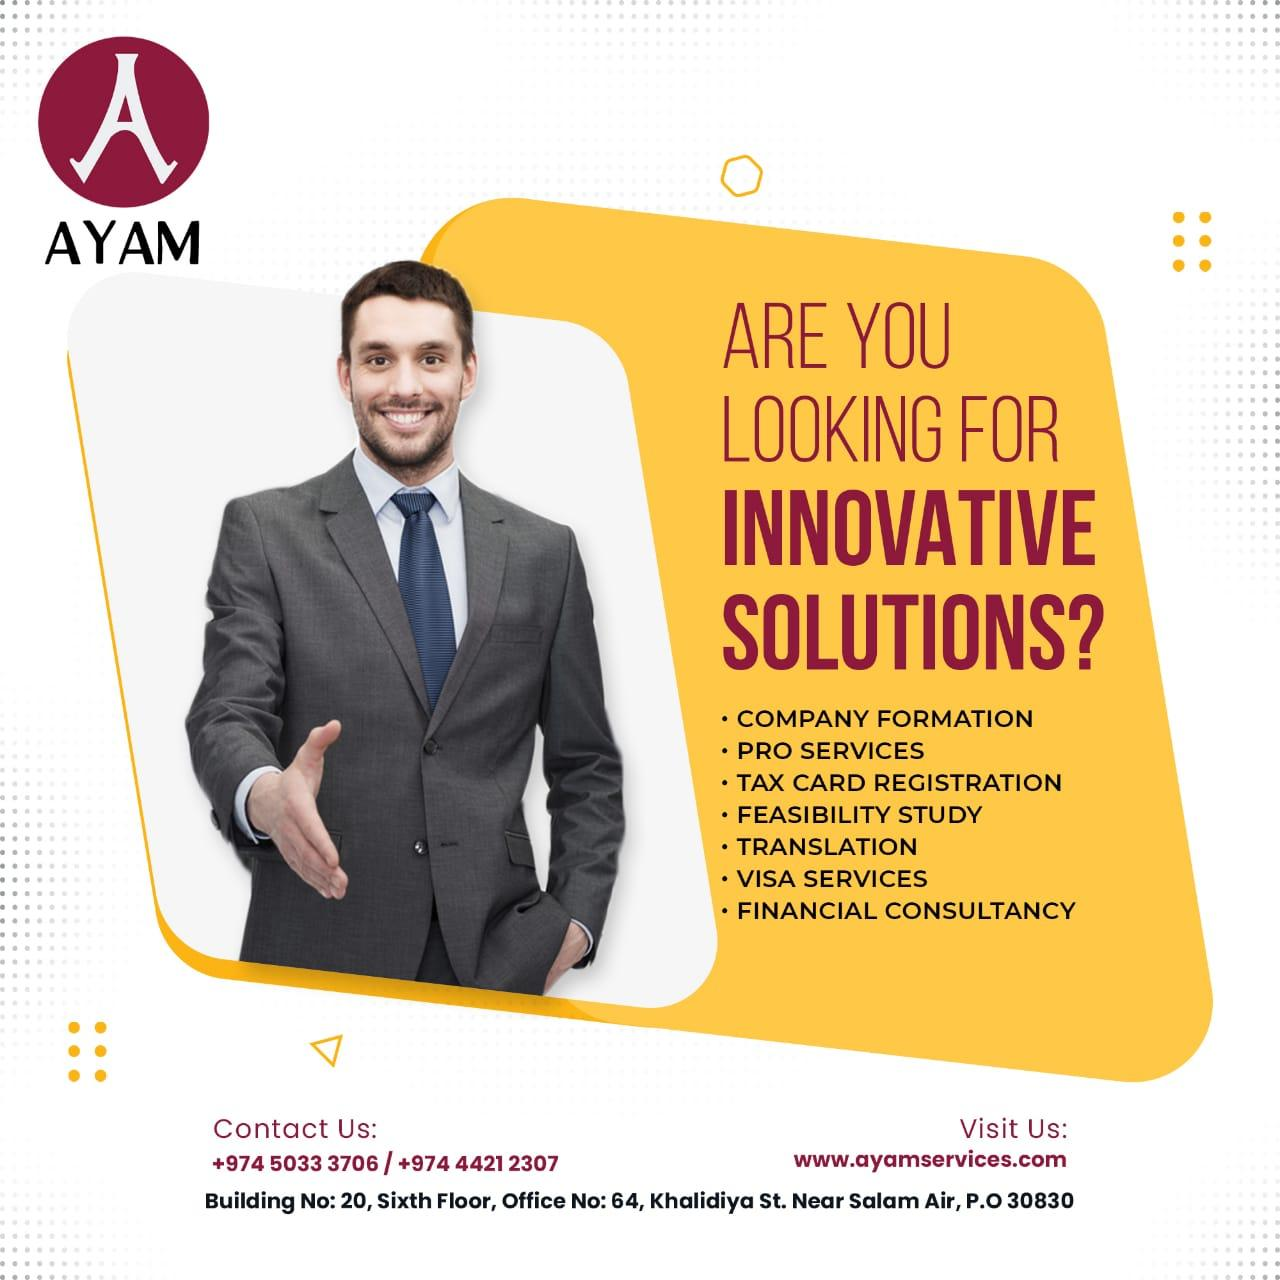 FOR SET UP A COMPANY - FORMATION,PRO Services